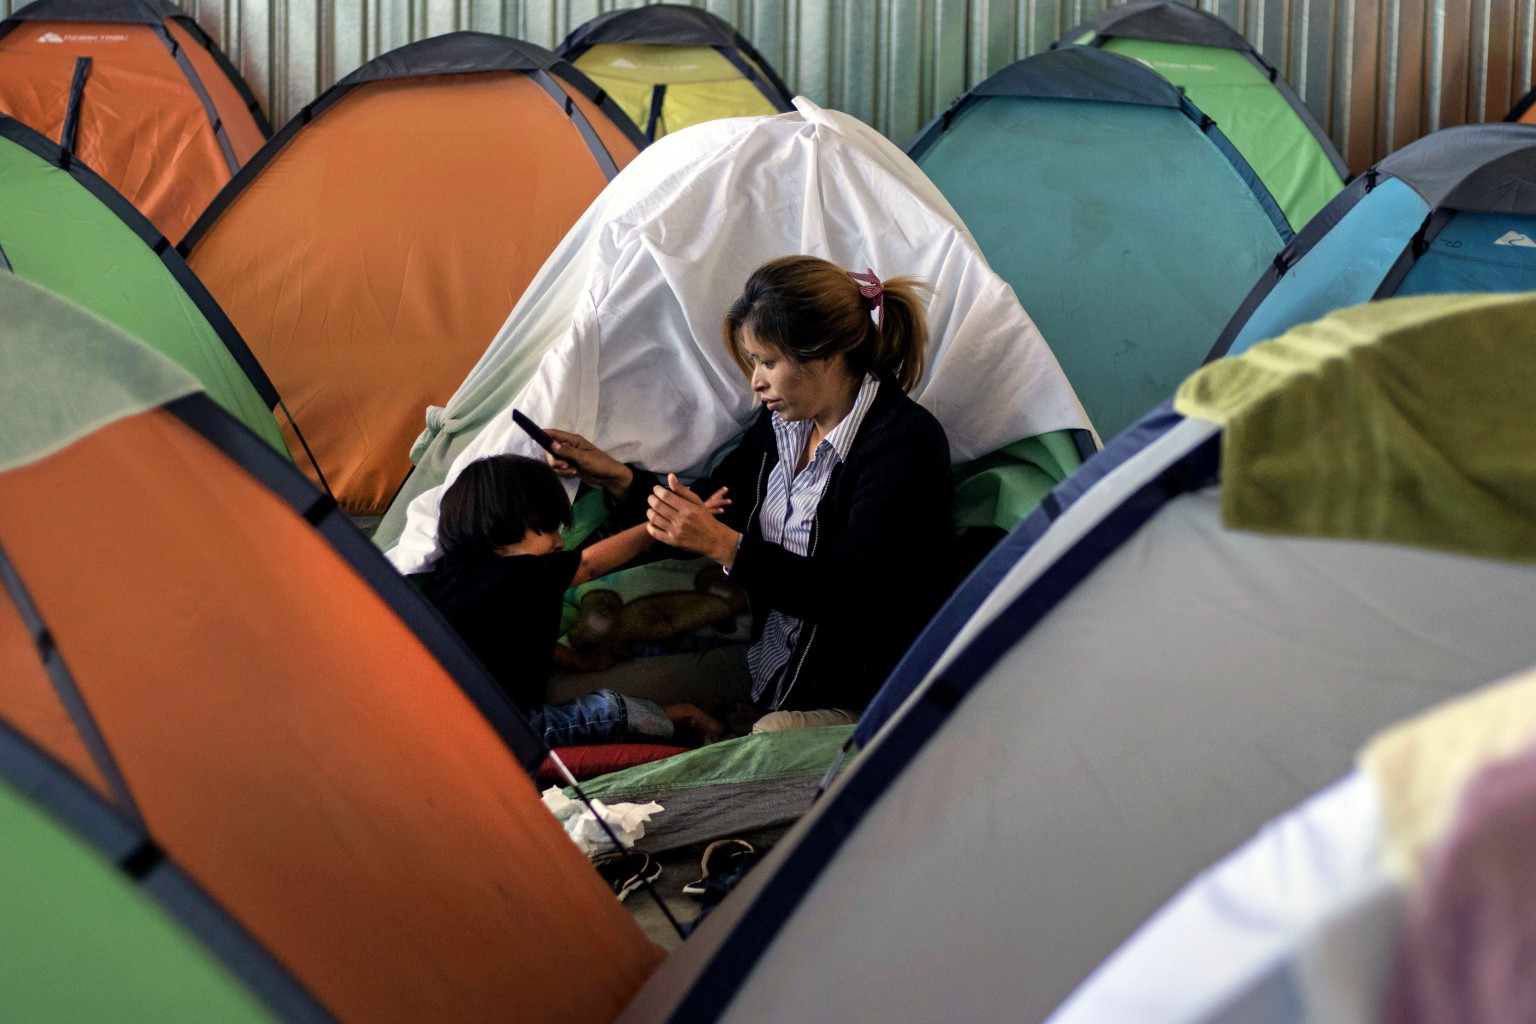 Elsa, a Central American migrant, combs her daughter Adriana's hair outside their tent at a shelter in Tijuana, Mexico, on April 17. The family was taking part in the annual Stations of the Cross caravan, which has brought awareness to the plight of Central American migrants fleeing violence in their countries. GUILLERMO ARIAS/AFP/Getty Images